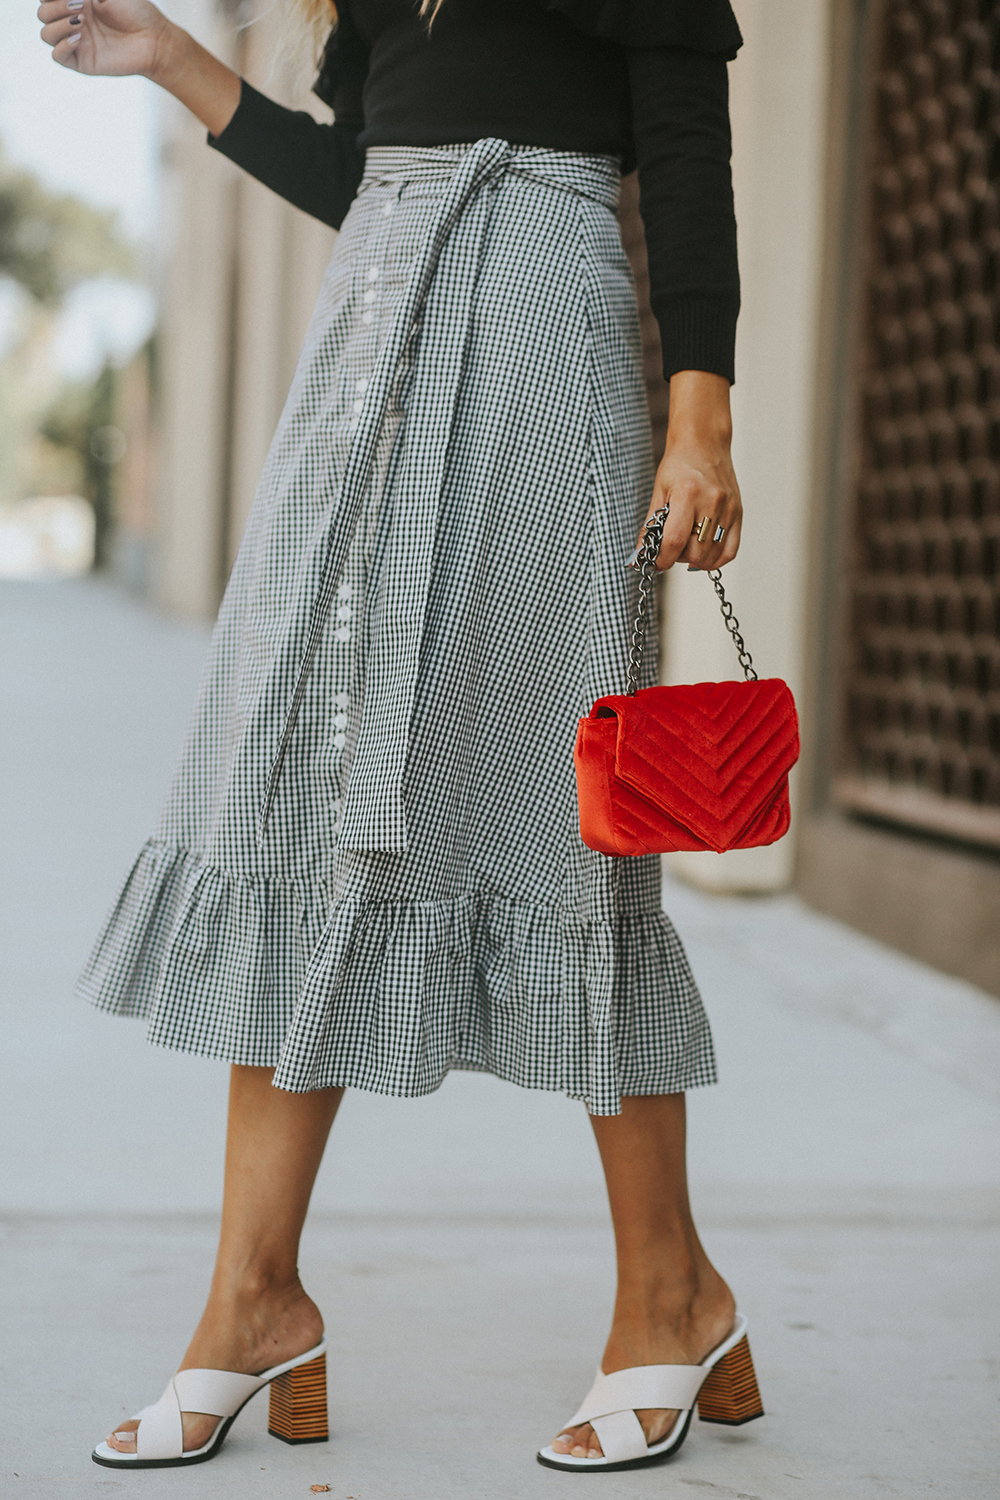 amaro fashion, red, red for fall, fall style, fall, ootd, outfit, melrodstyle, la blogger, street style, latina blogger, hispanic blogger, mexican blogger, fashion,